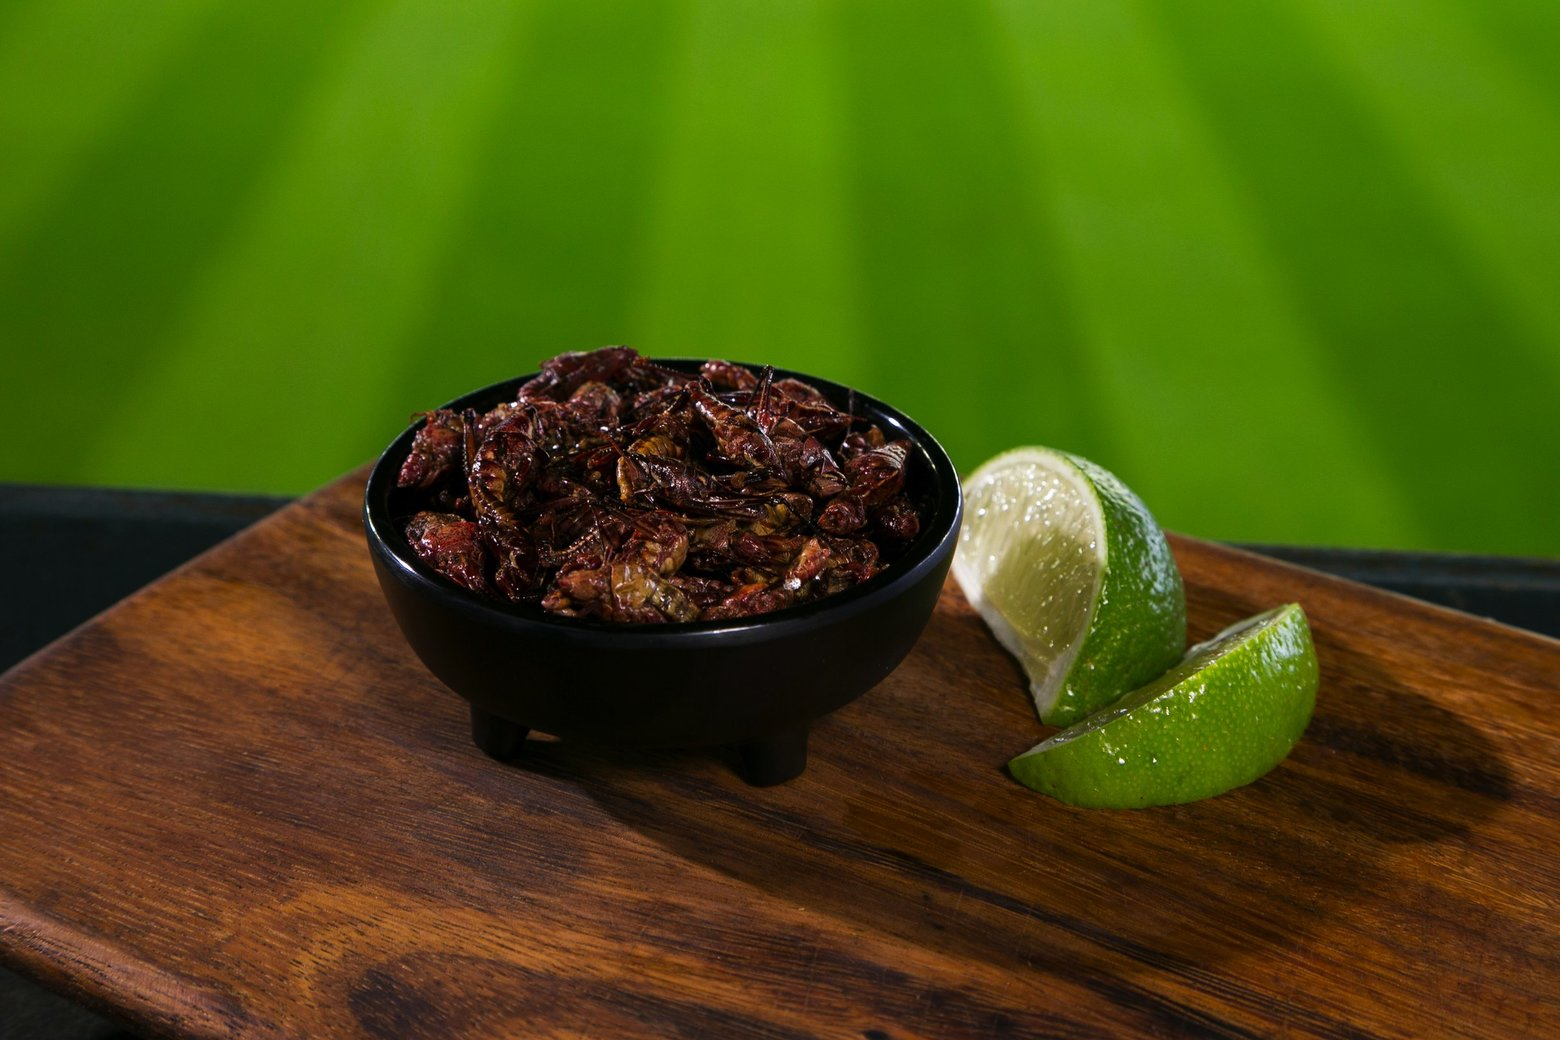 Grasshopper dish with lime on the side